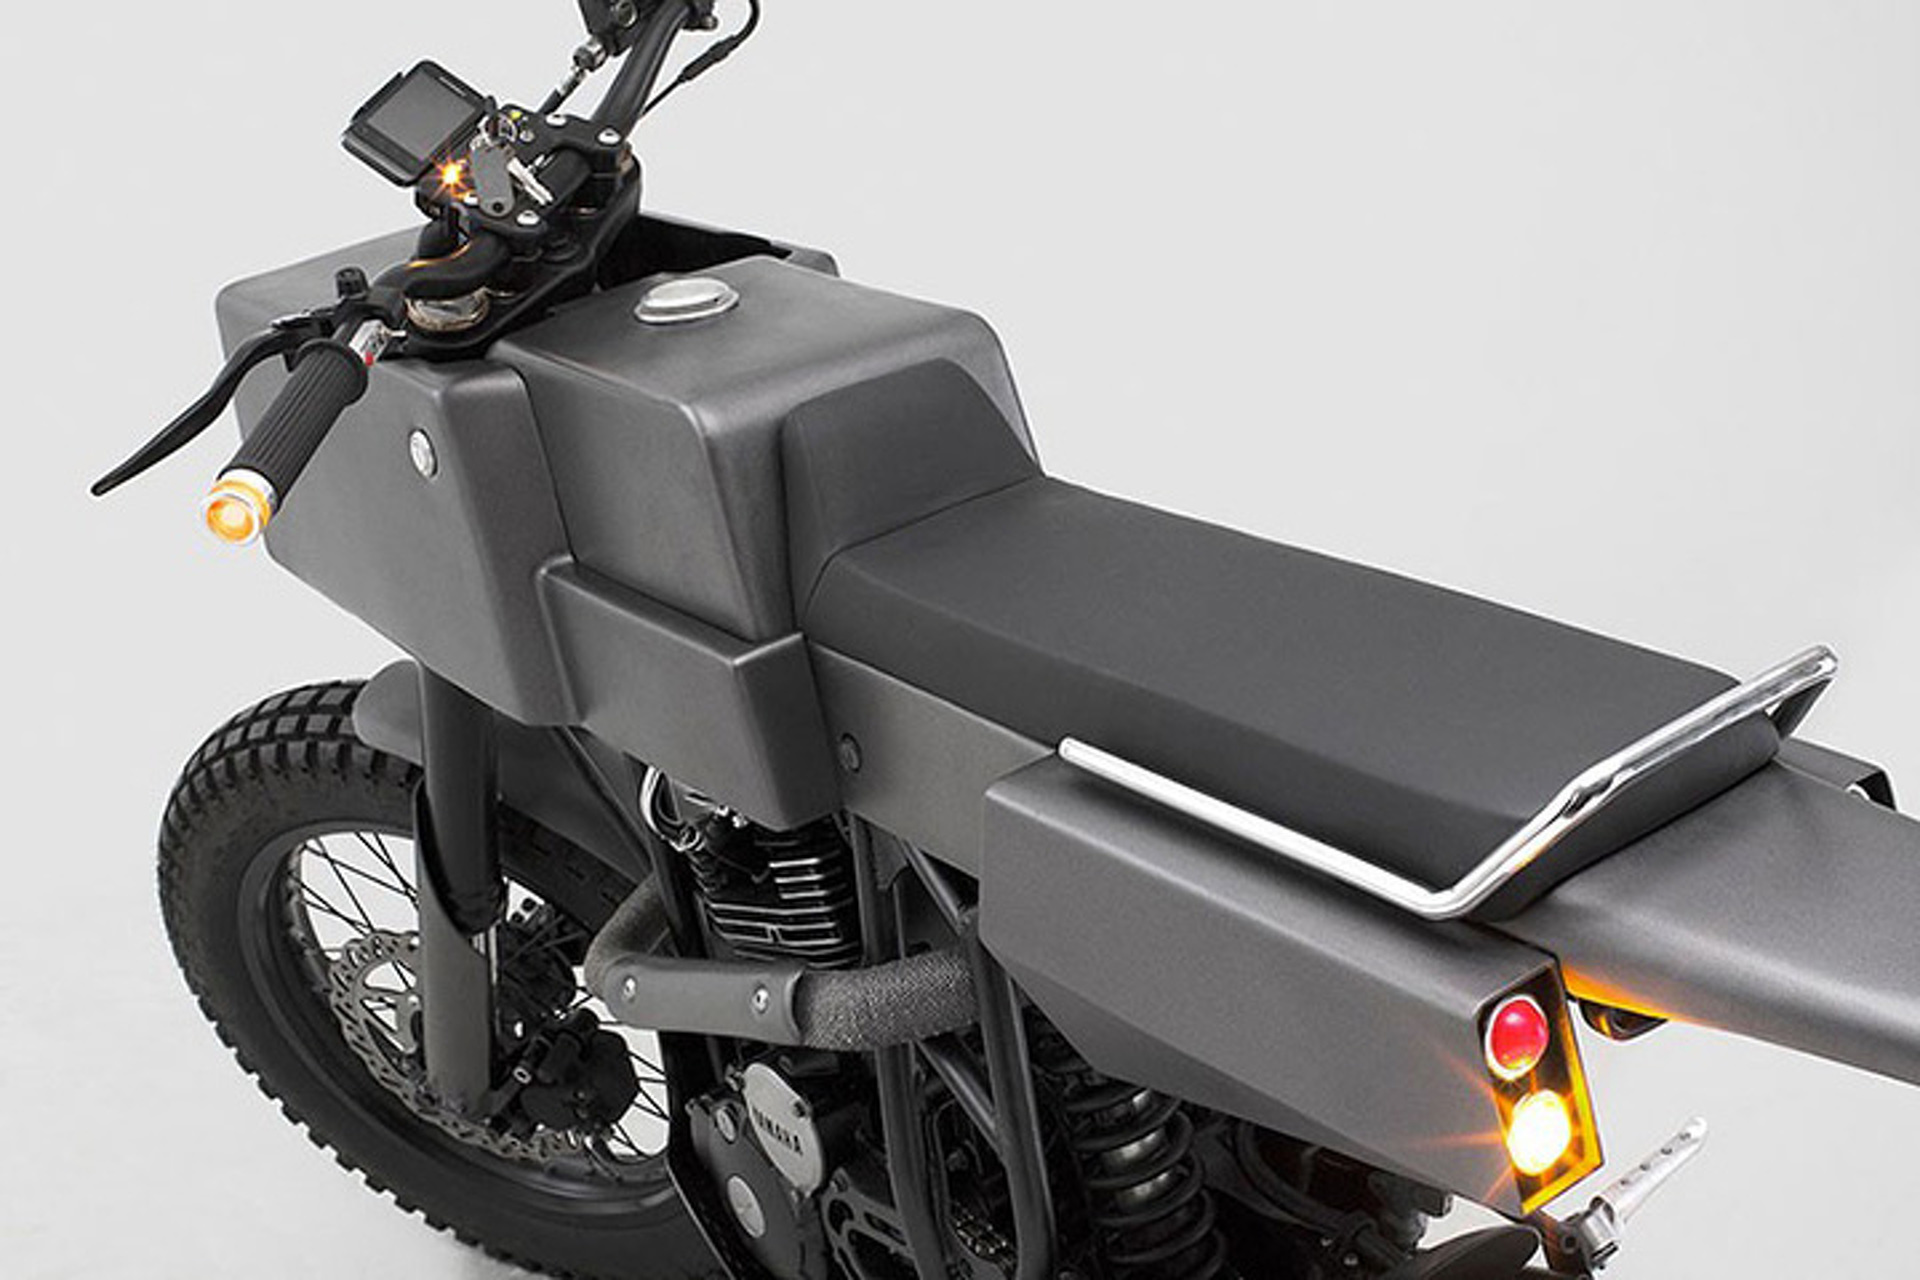 The Thrive MC T 500 Cross Is Square, Bare, and Artfully Awesome